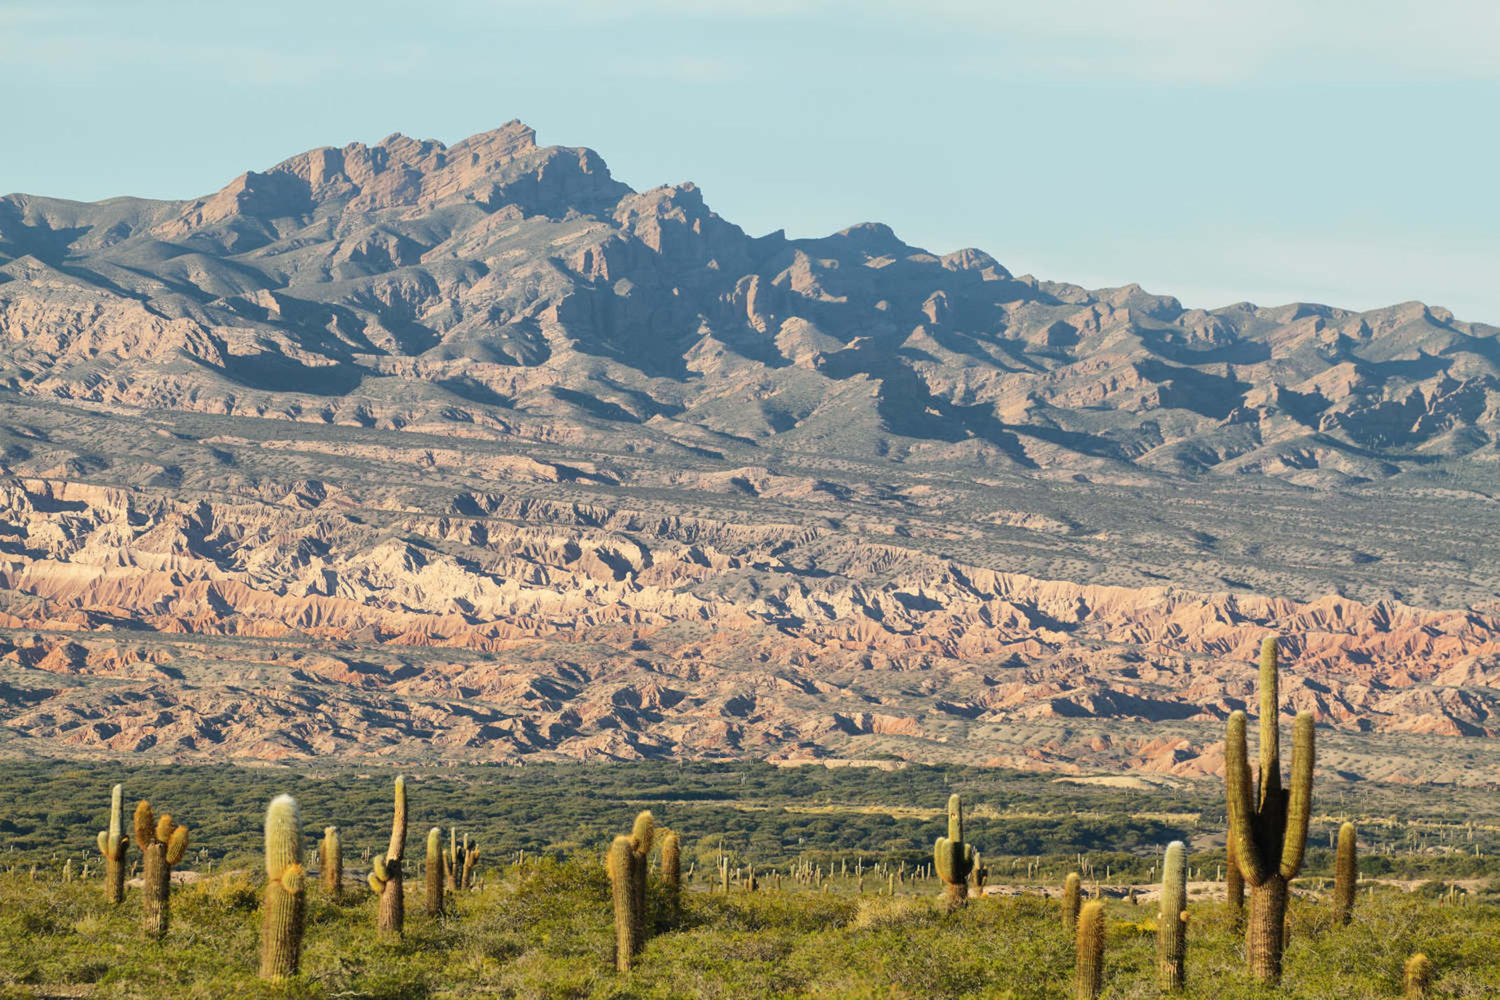 View of Los Cardones national park